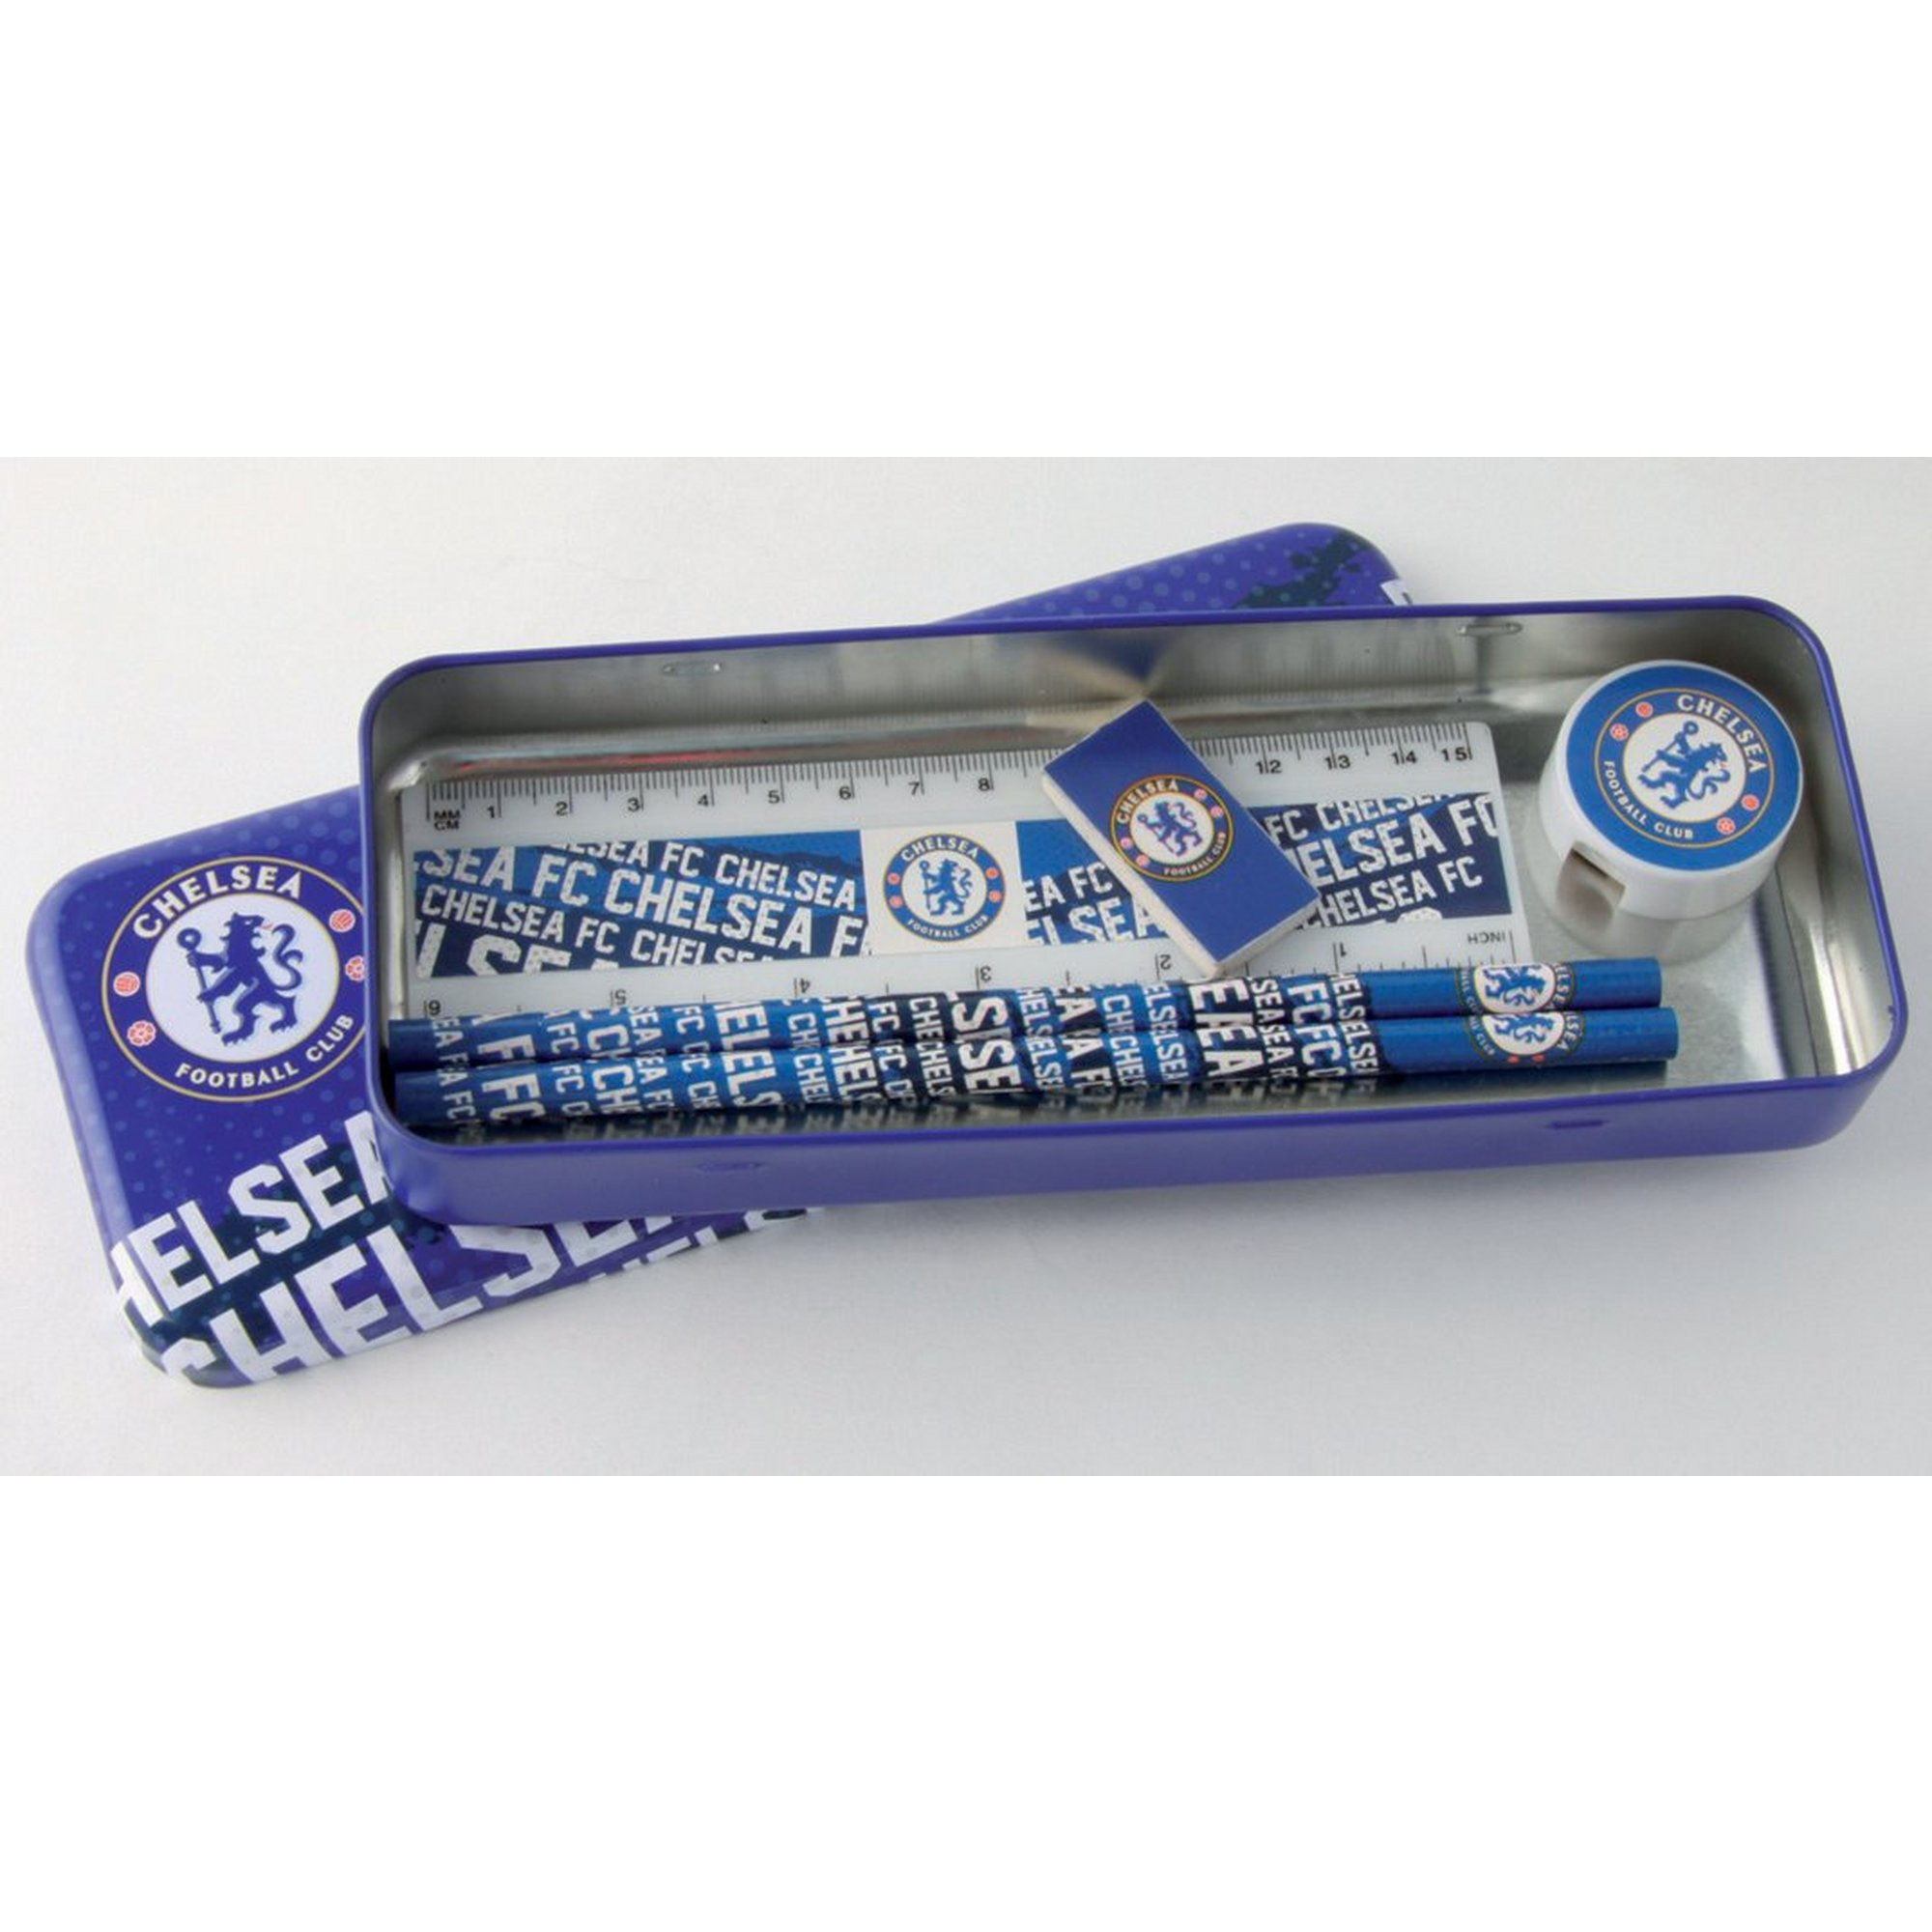 Image of Chelsea Pencil Case and Accessories